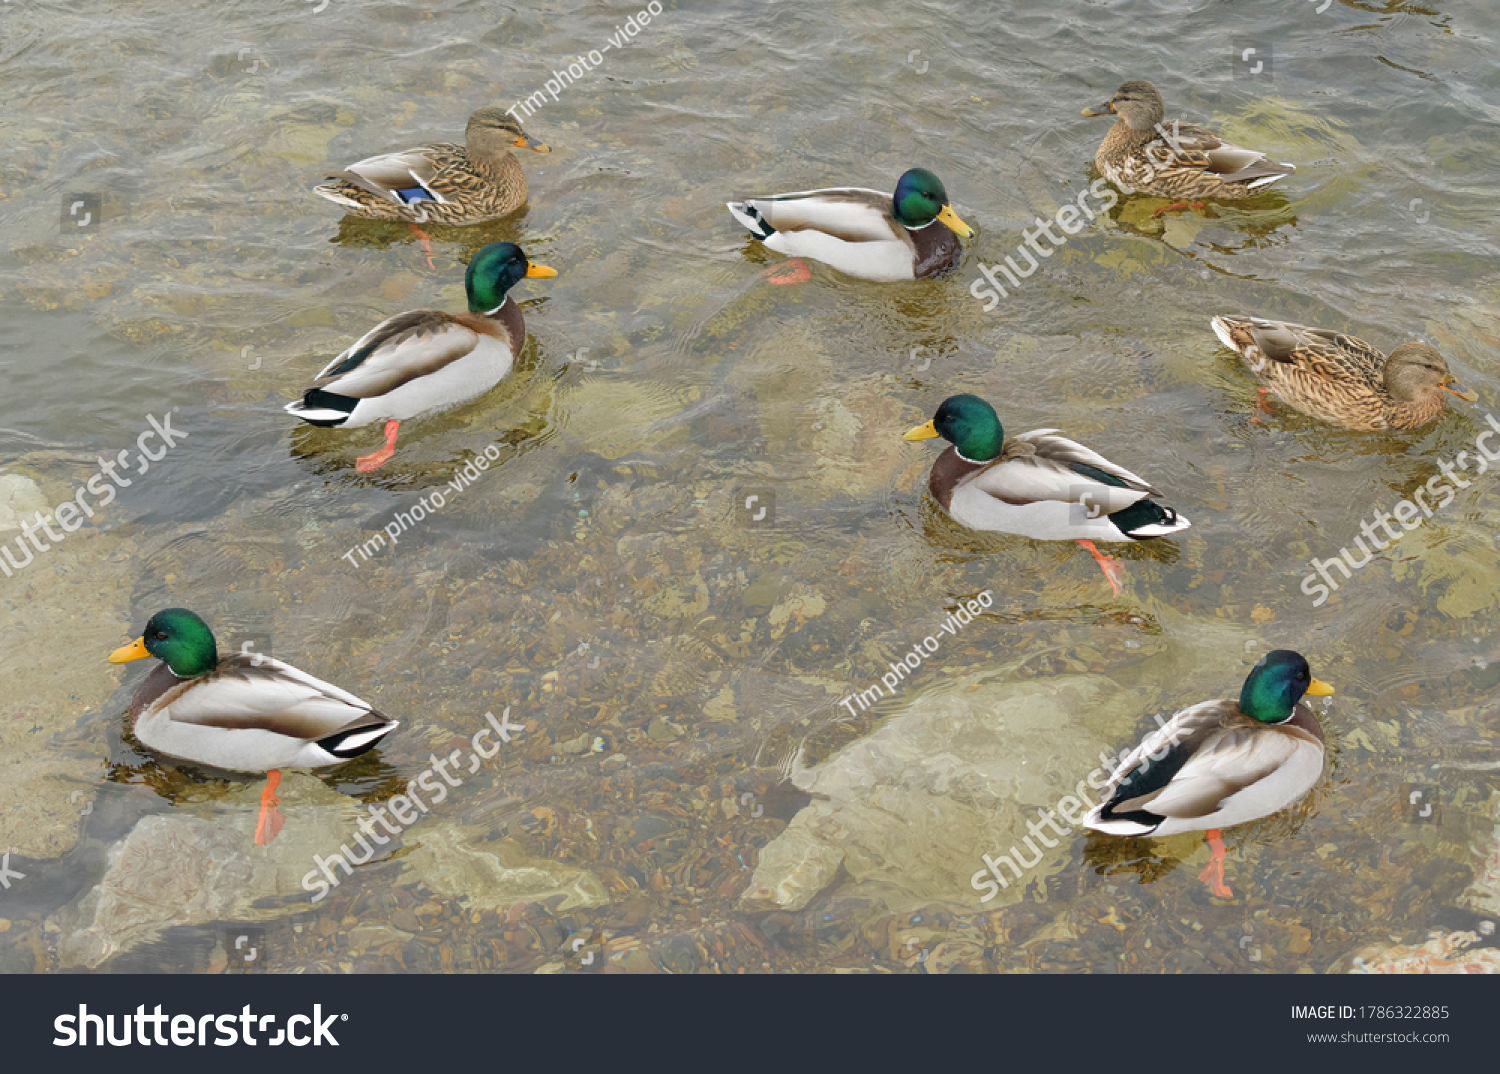 stock-photo-ducks-swim-on-the-pond-drake